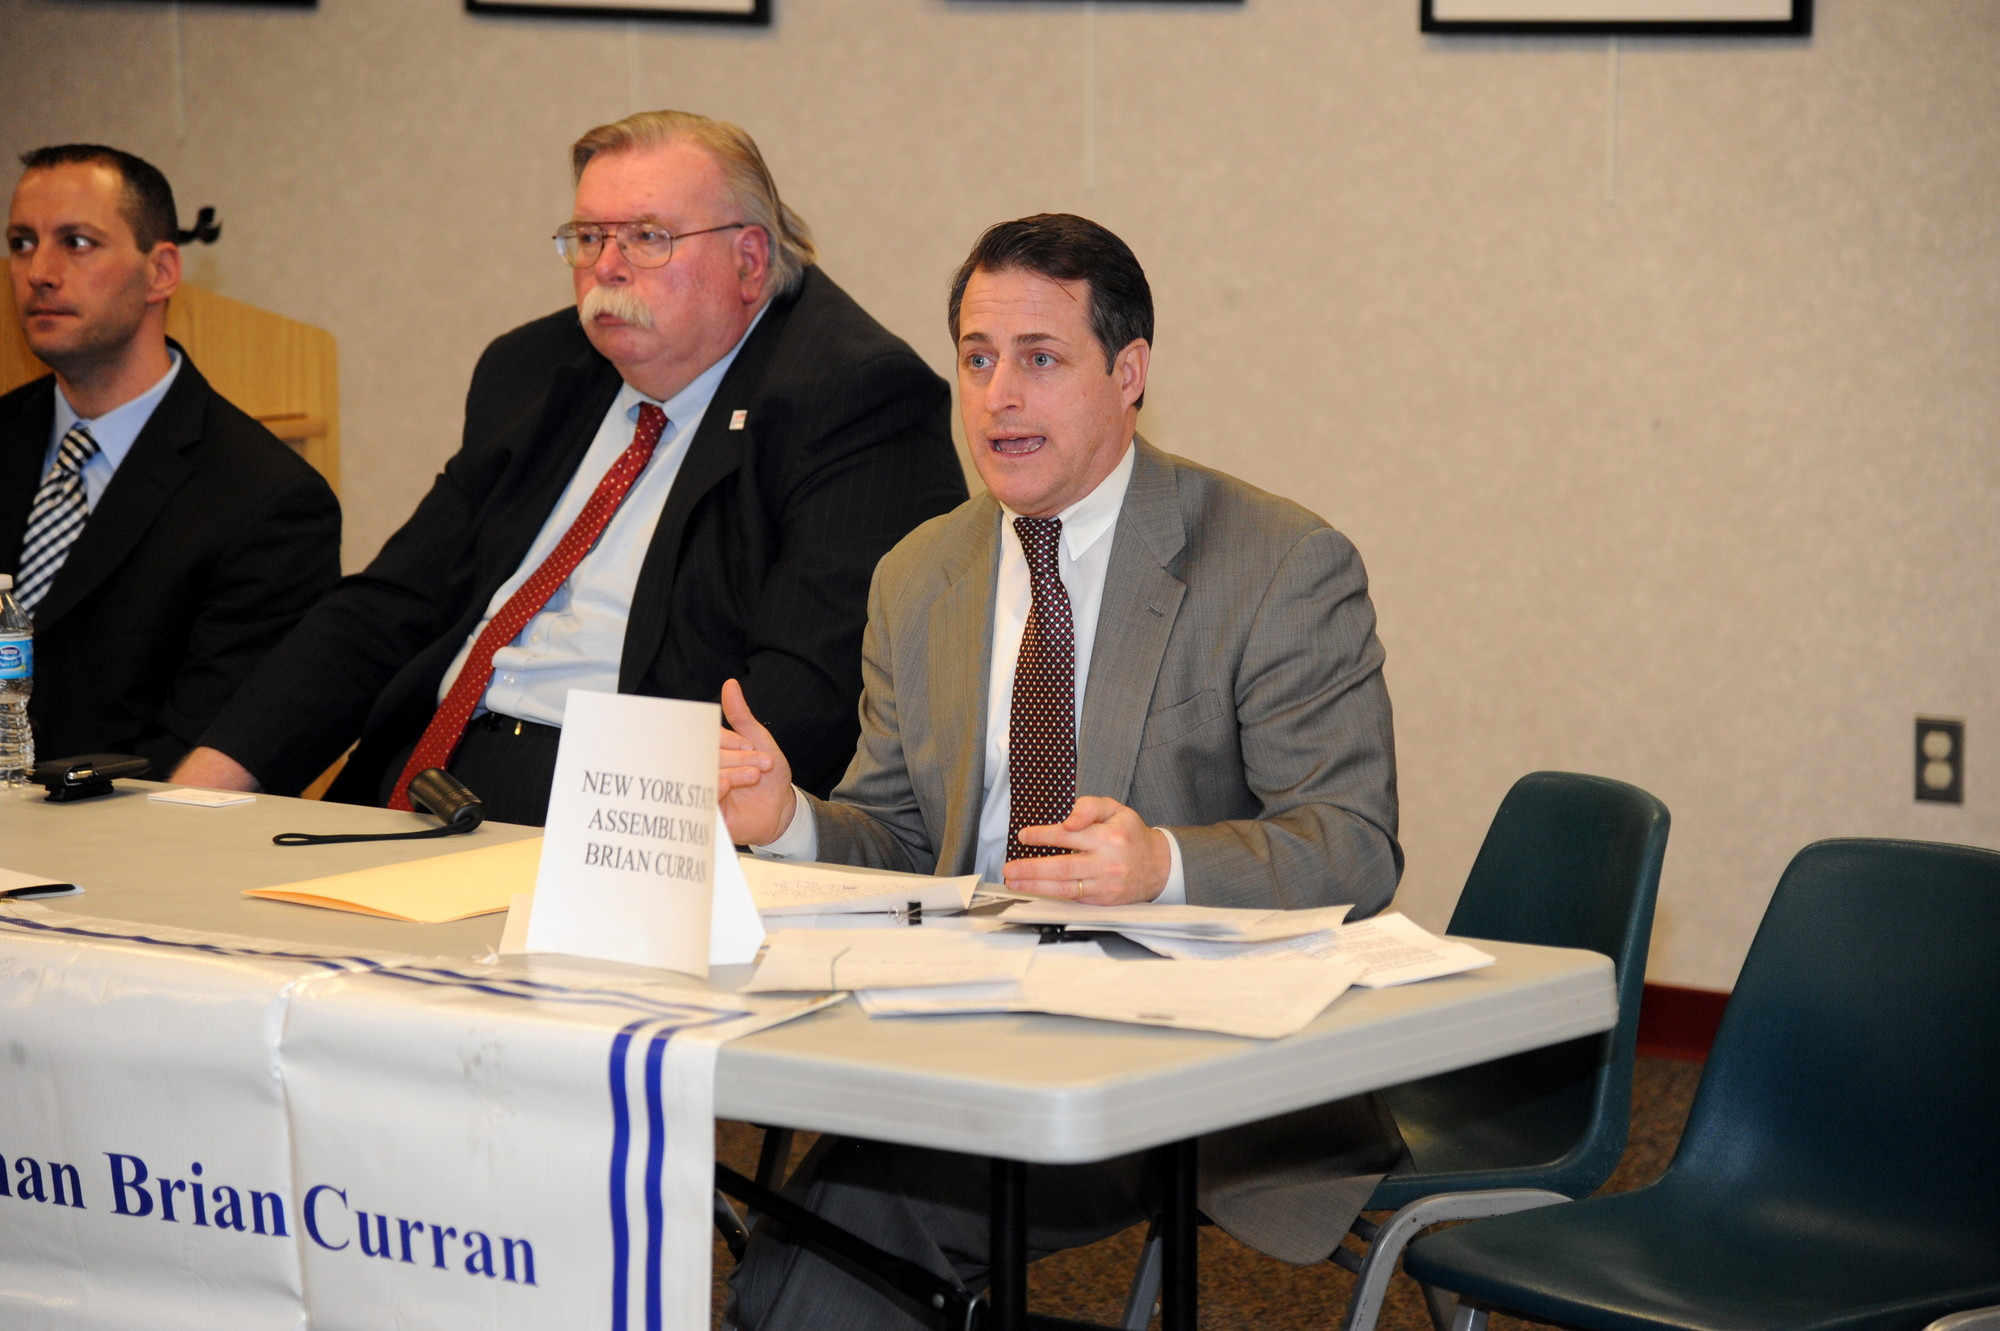 State Assemblyman Brian Curran addressed local concerns about the Long Island Rail Road with MTA official Robert Brennan, left, during an open forum at the Rockville Centre Library on Jan. 30.